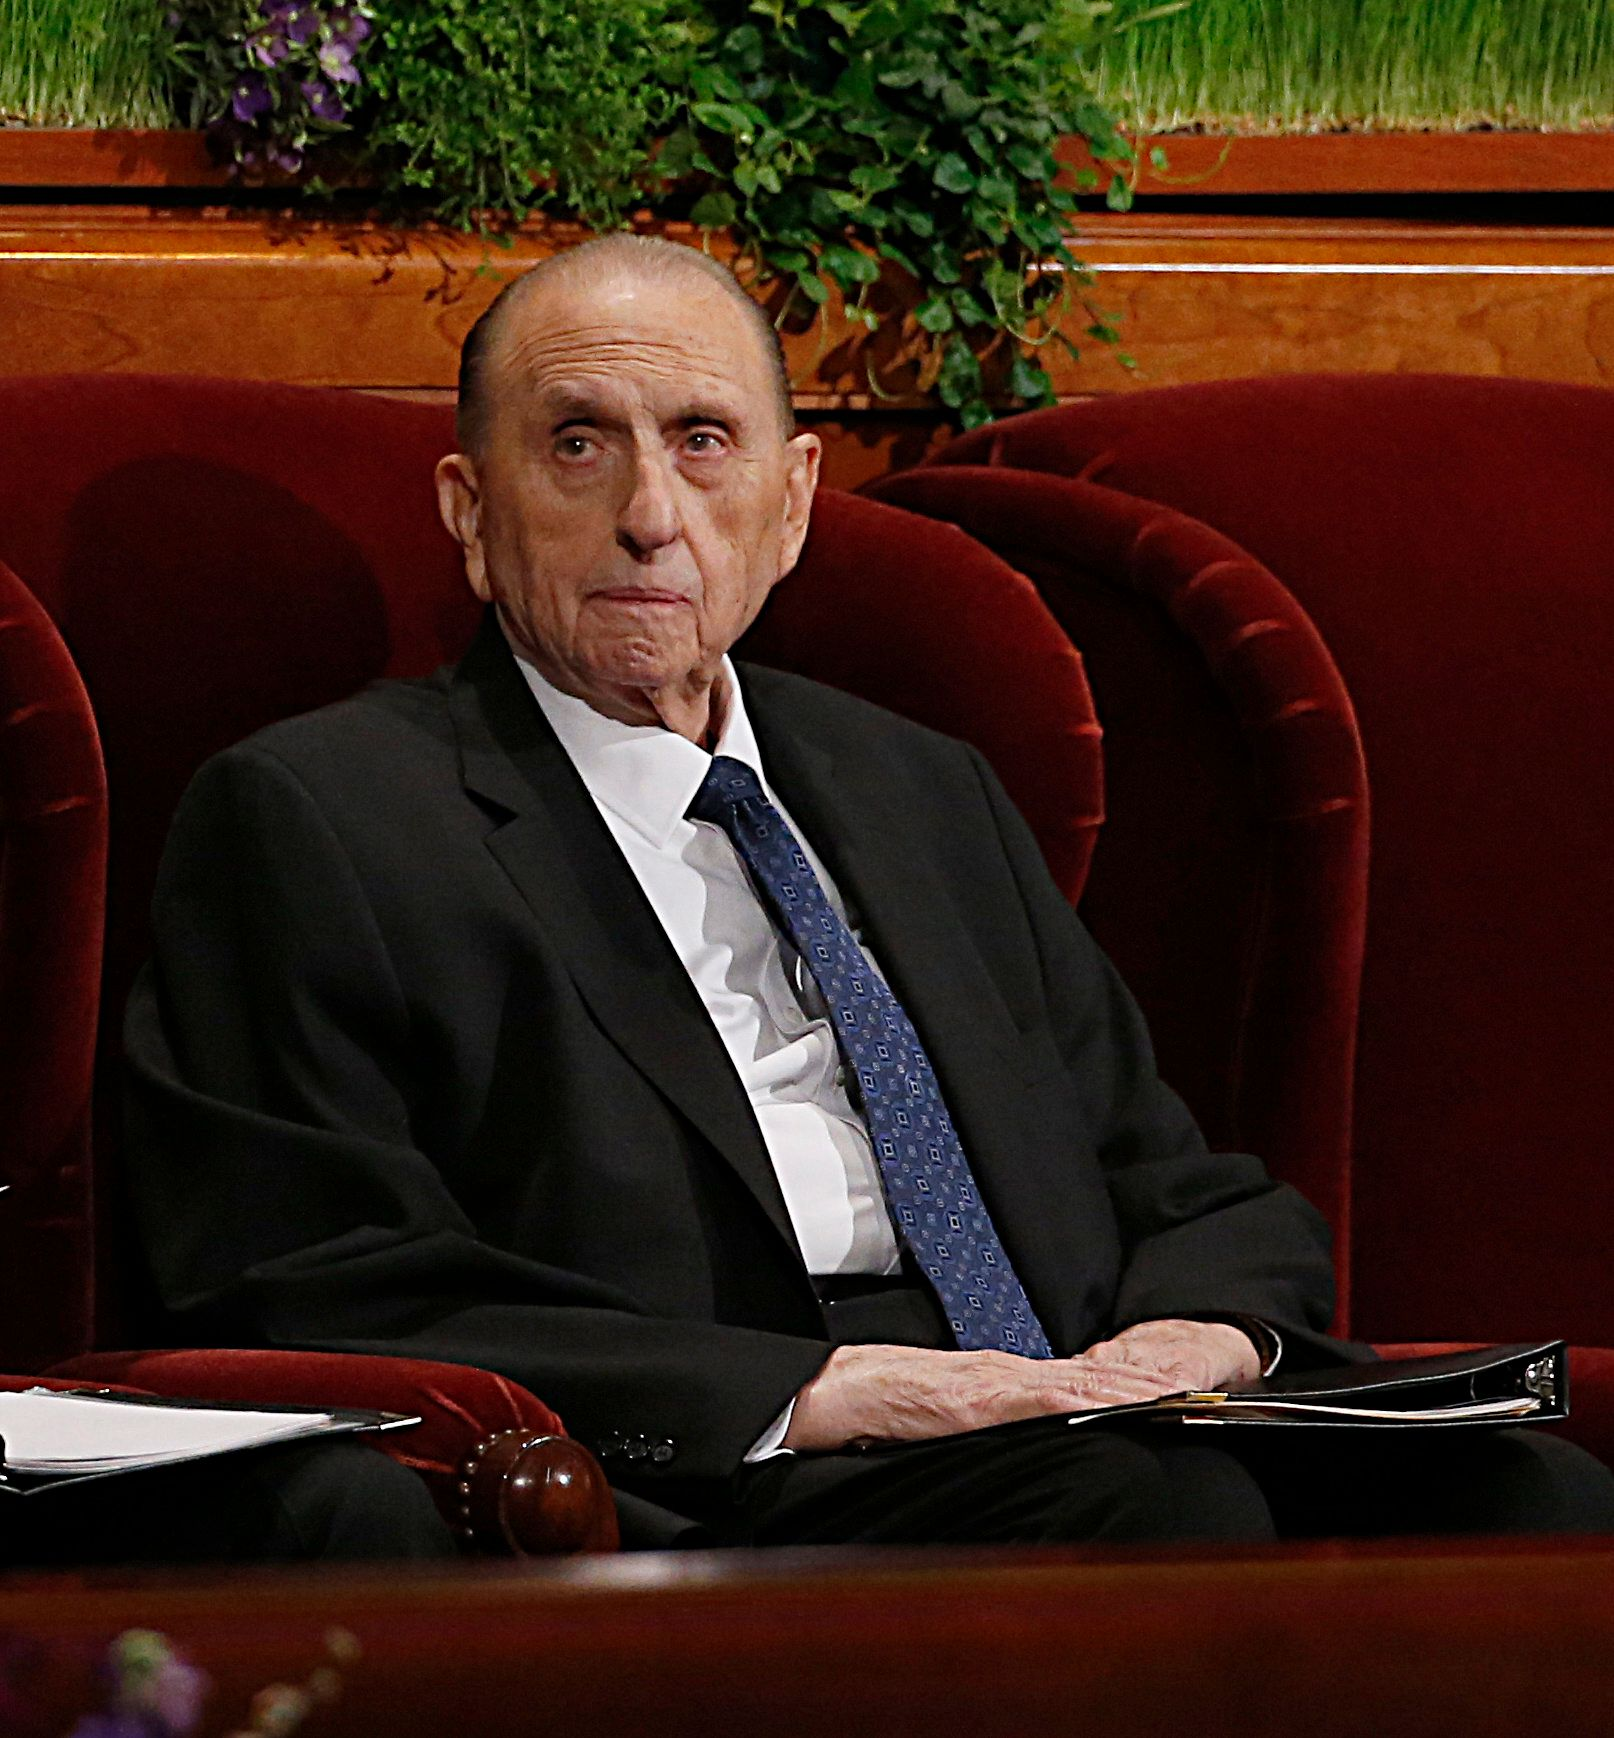 SALT LAKE CITY, UT - APRIL 2: President Thomas Monson, waits for the start of the 186th Annual General Conference of the Church of Jesus Christ of Latter-Day Saints on April 2, 2016 in Salt Lake City, Utah. Mormons from around the world will gather in Salt Lake City to hear direction from church leaders at the two day conference. (Photo by George Frey/Getty Images